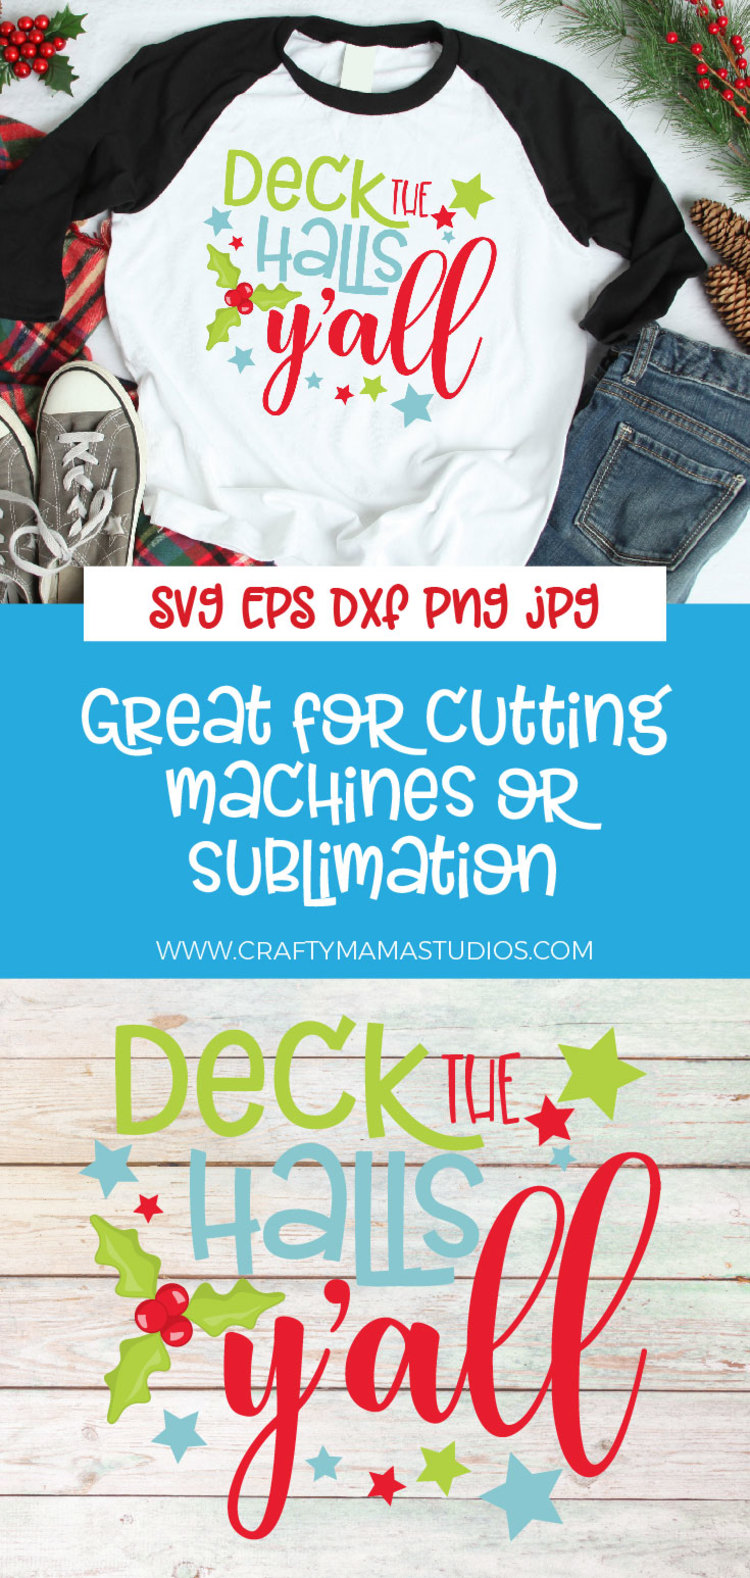 Christmas SVG, Deck The Halls Y'all Sublimation example image 3